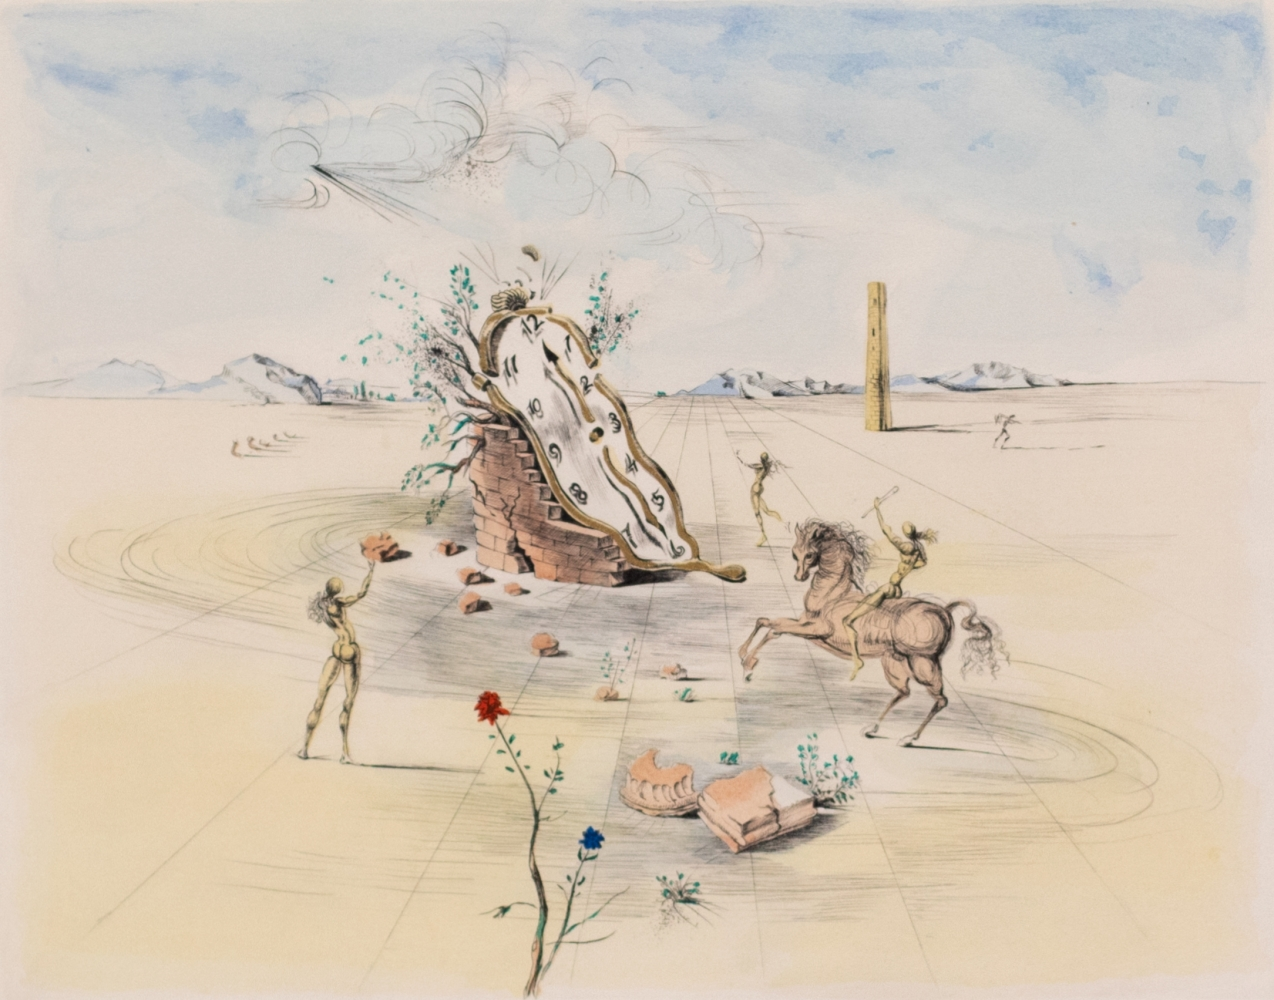 Salvador Dali, Cosmic Horseman, 1982, Color Lithograph on paper, 19.25 x 21.25 inches, Frame size-30.25 x 32.25 inches, Edition 168 of 300, Salvador Dali signed prints, Salvador Dali Prints for sale